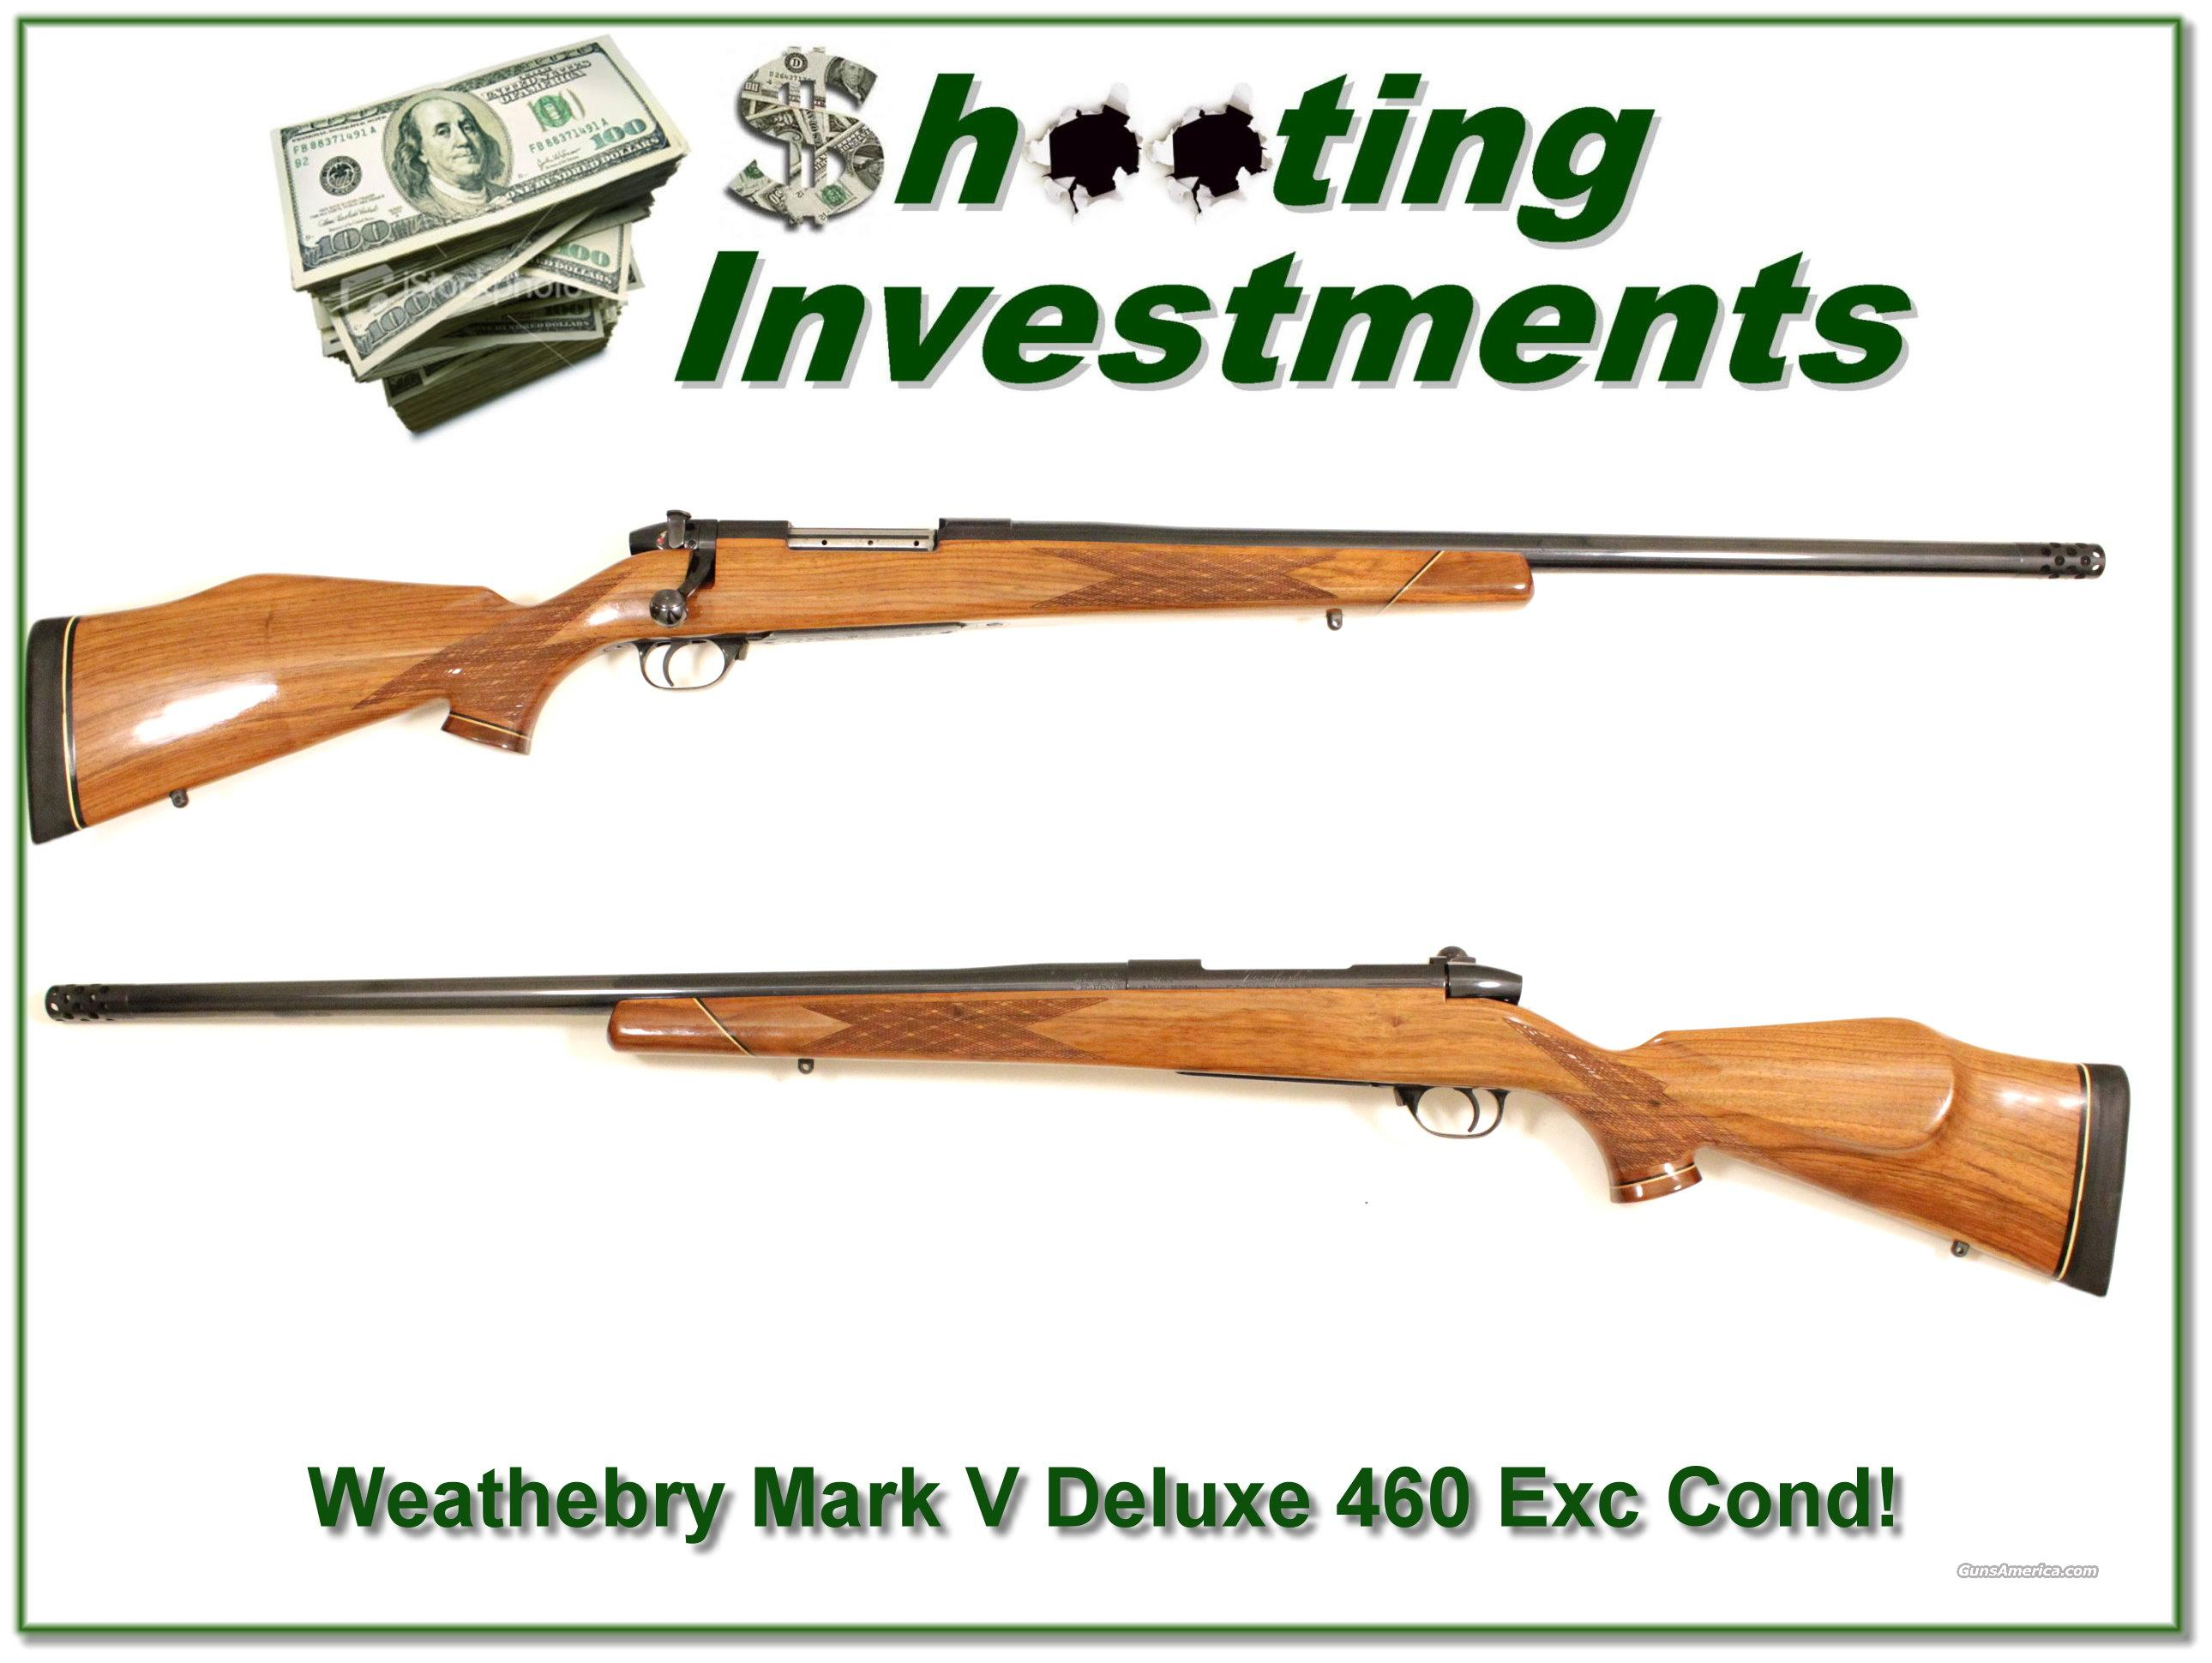 Weathebry Mark V Deluxe 460 Exc Cond!  Guns > Rifles > Weatherby Rifles > Sporting